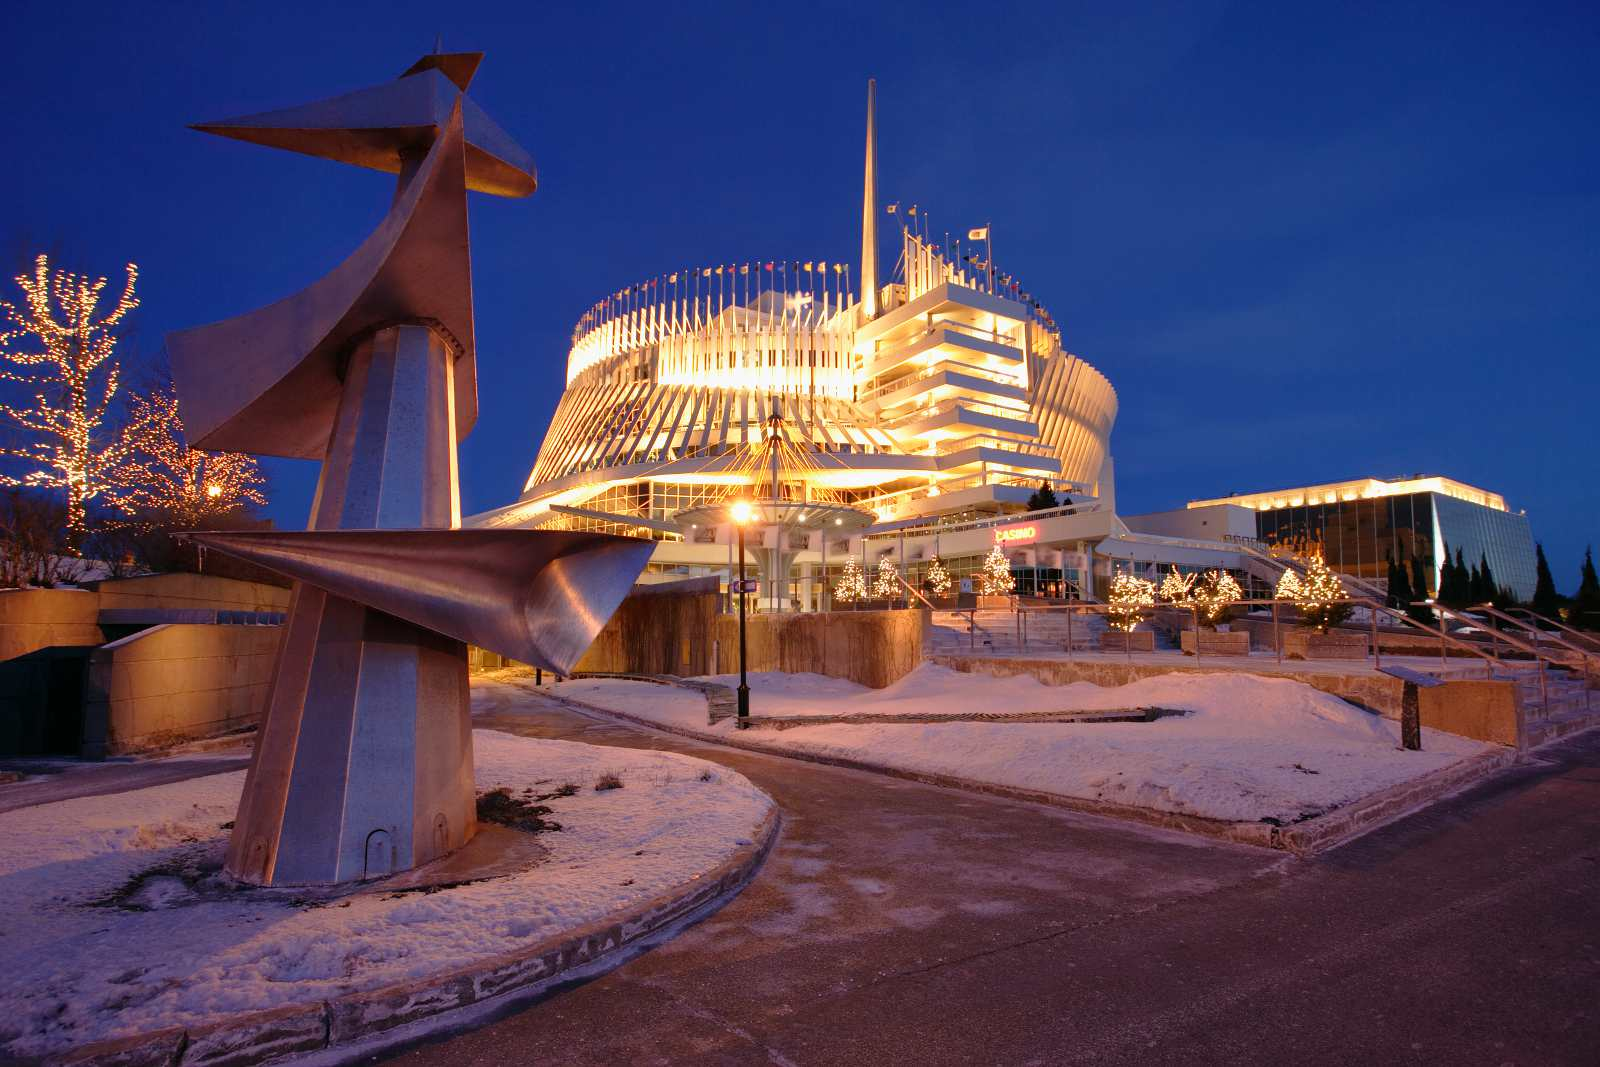 Montreal New Year's Eve 2016 events include checking out the Montreal Casino.